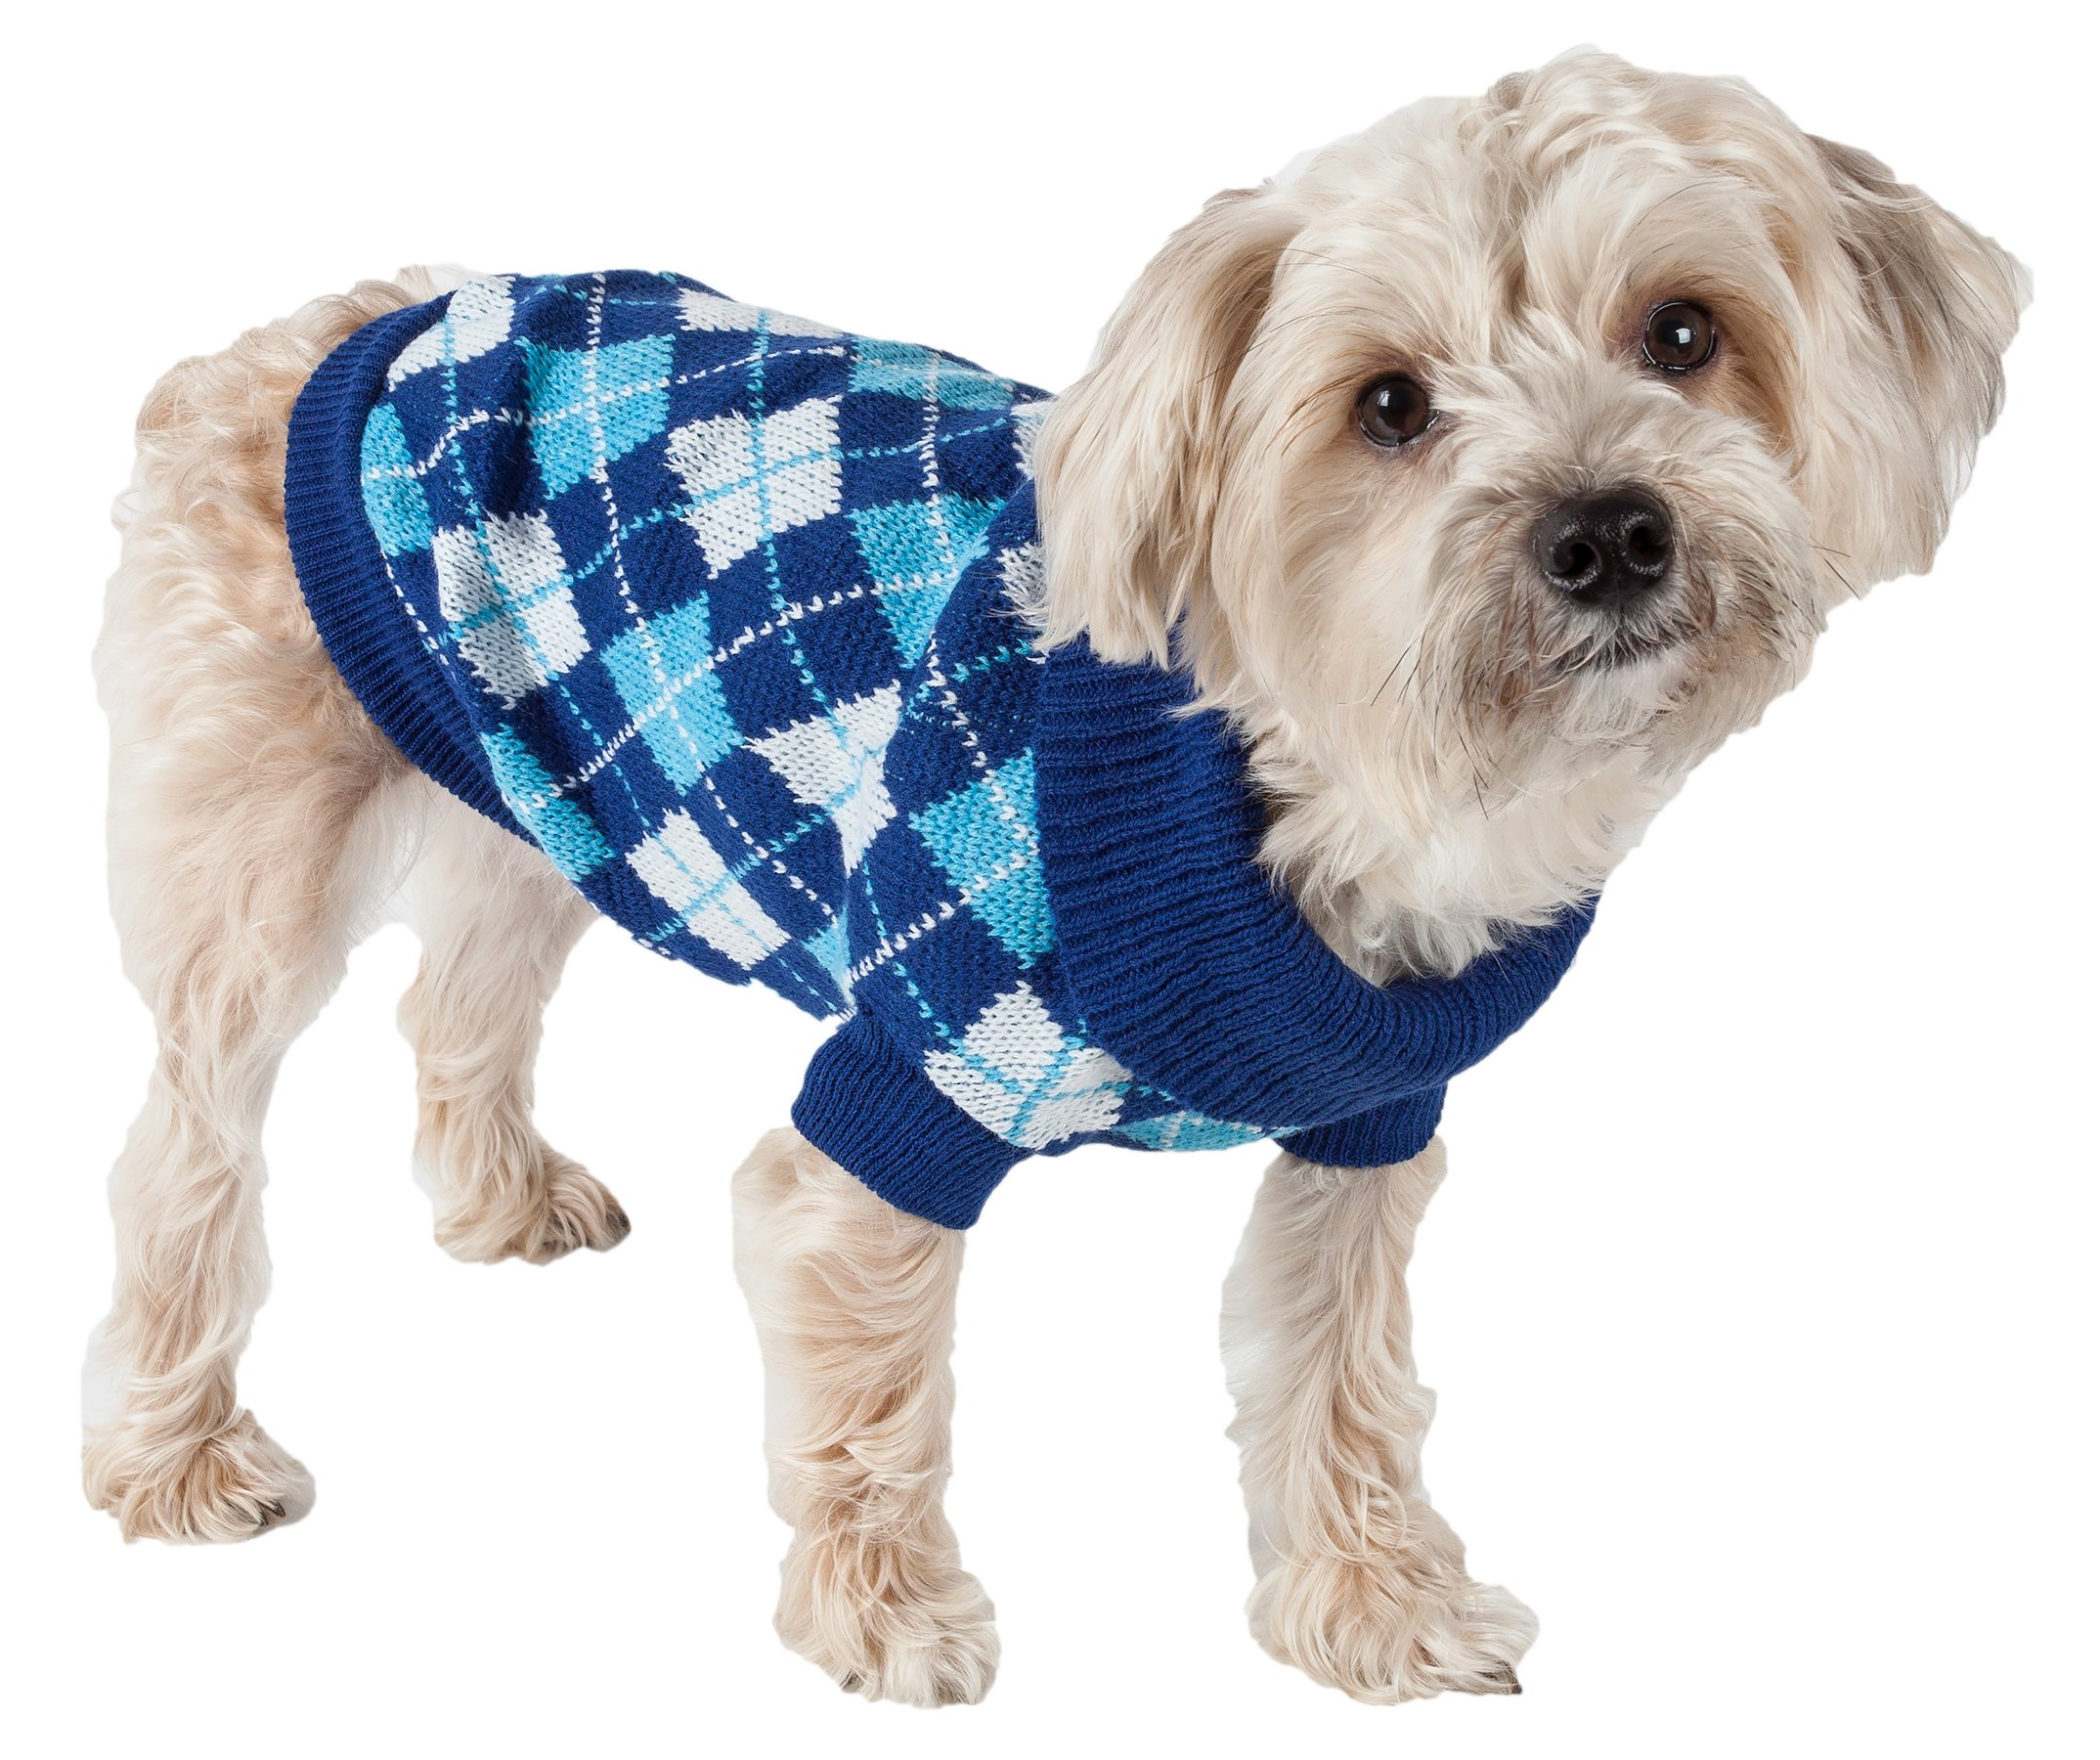 Pet Life Argyle Style' Ribbed Fashion Designer Pet Dog Sweater, Medium, Black/Blue Argyle